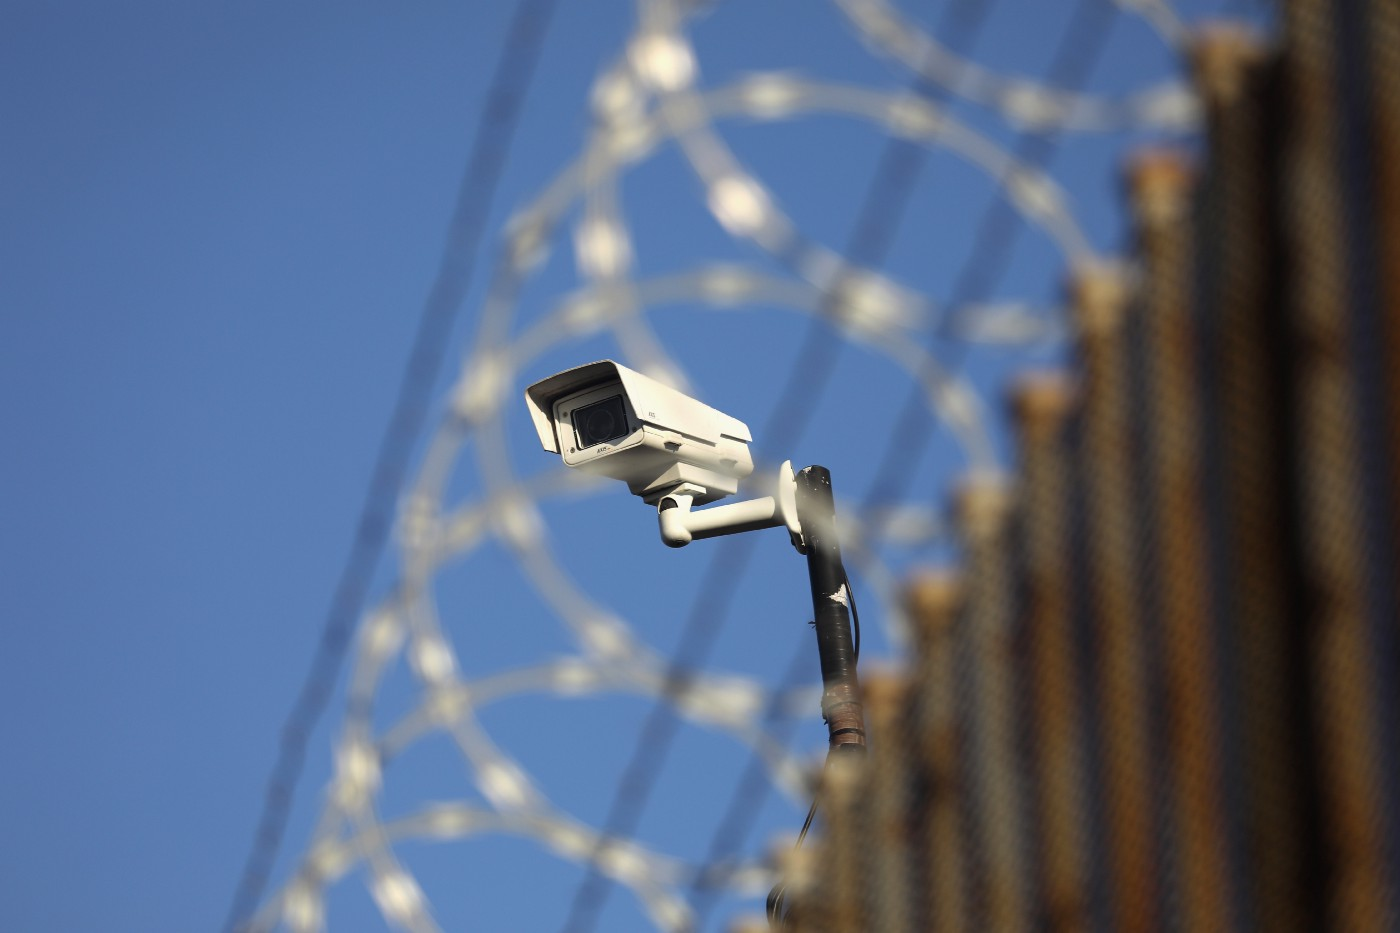 A U.S. surveillance camera overlooks the international bridge between Mexico and the United States.